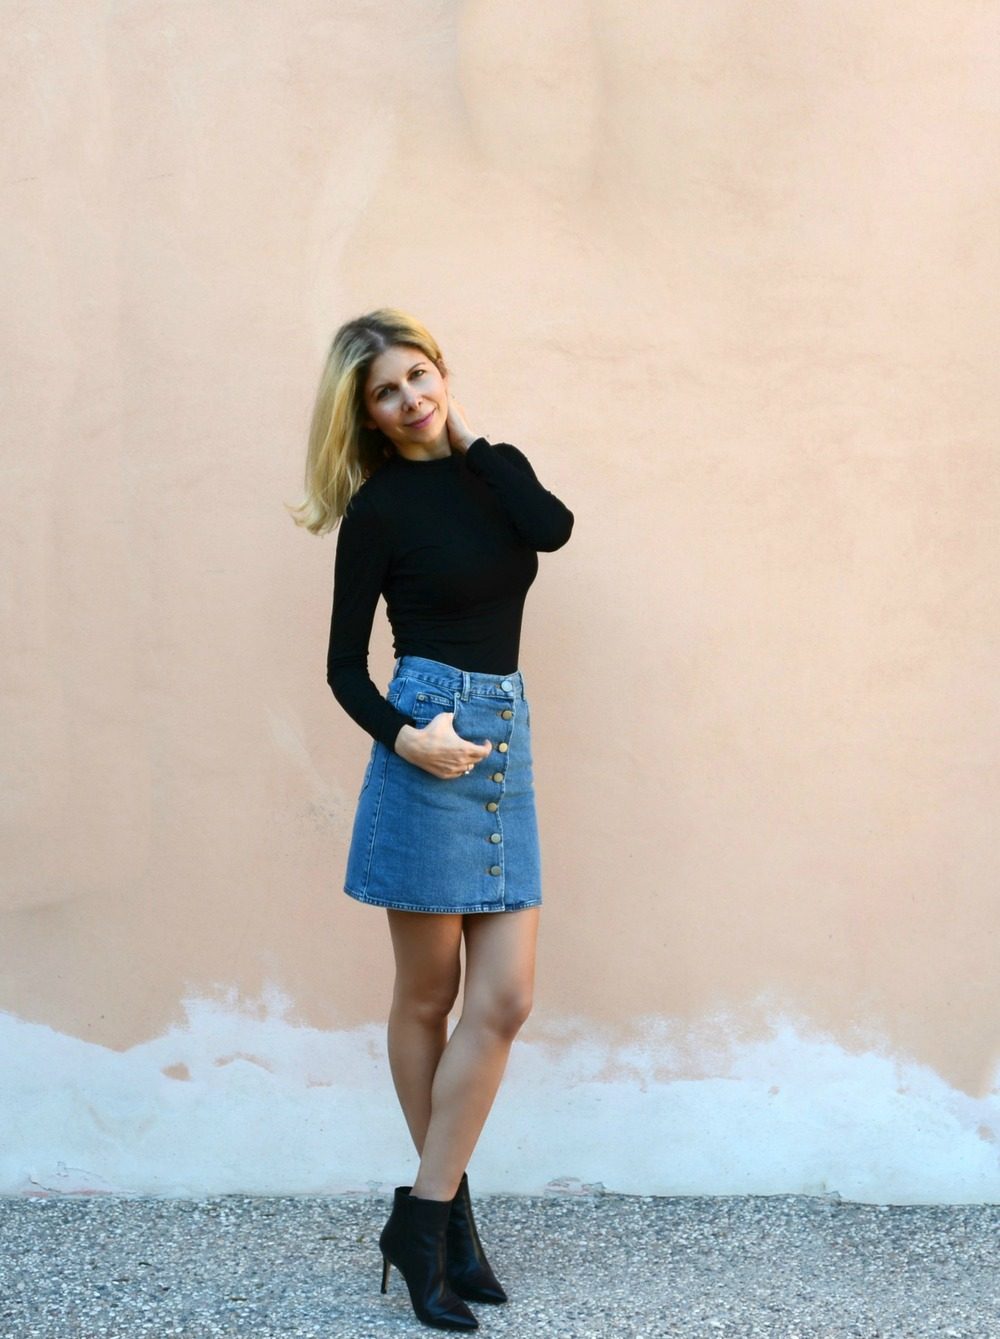 ASOS Denim skirt, Misguided turtleneck top, Russell & Bromley ankle boots.